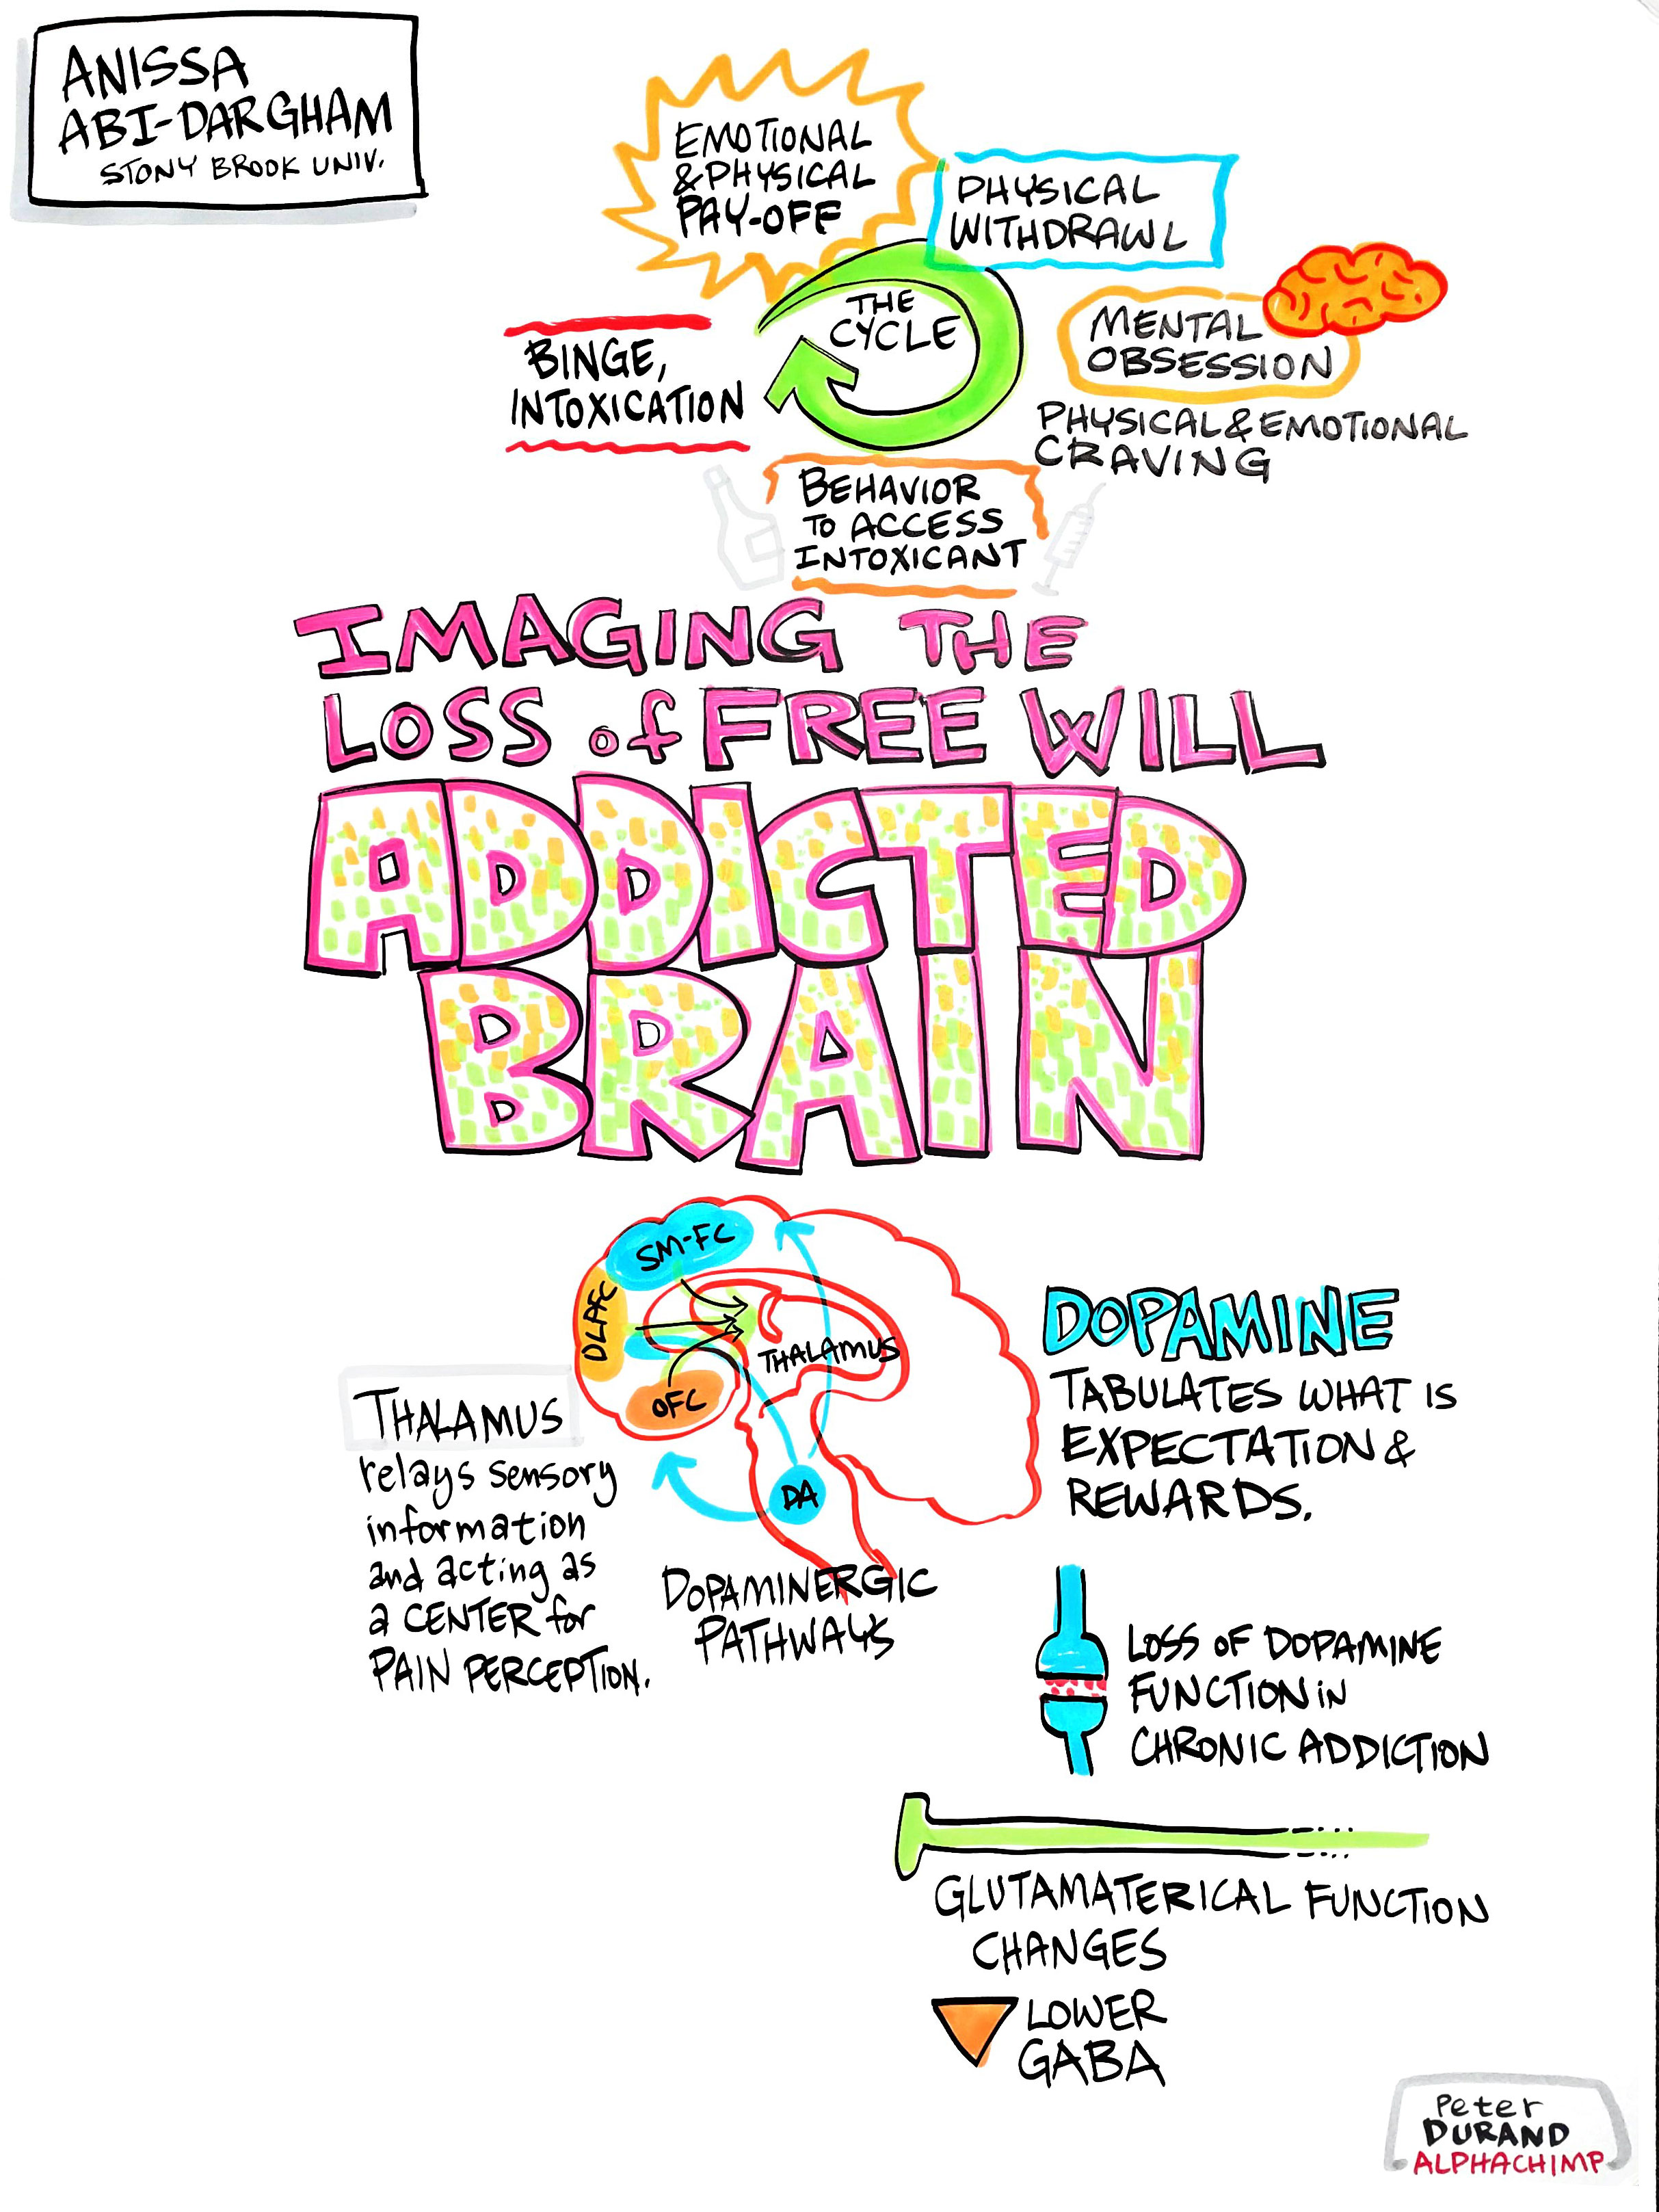 Imaging the Loss of Free Will in the Addicted Brain